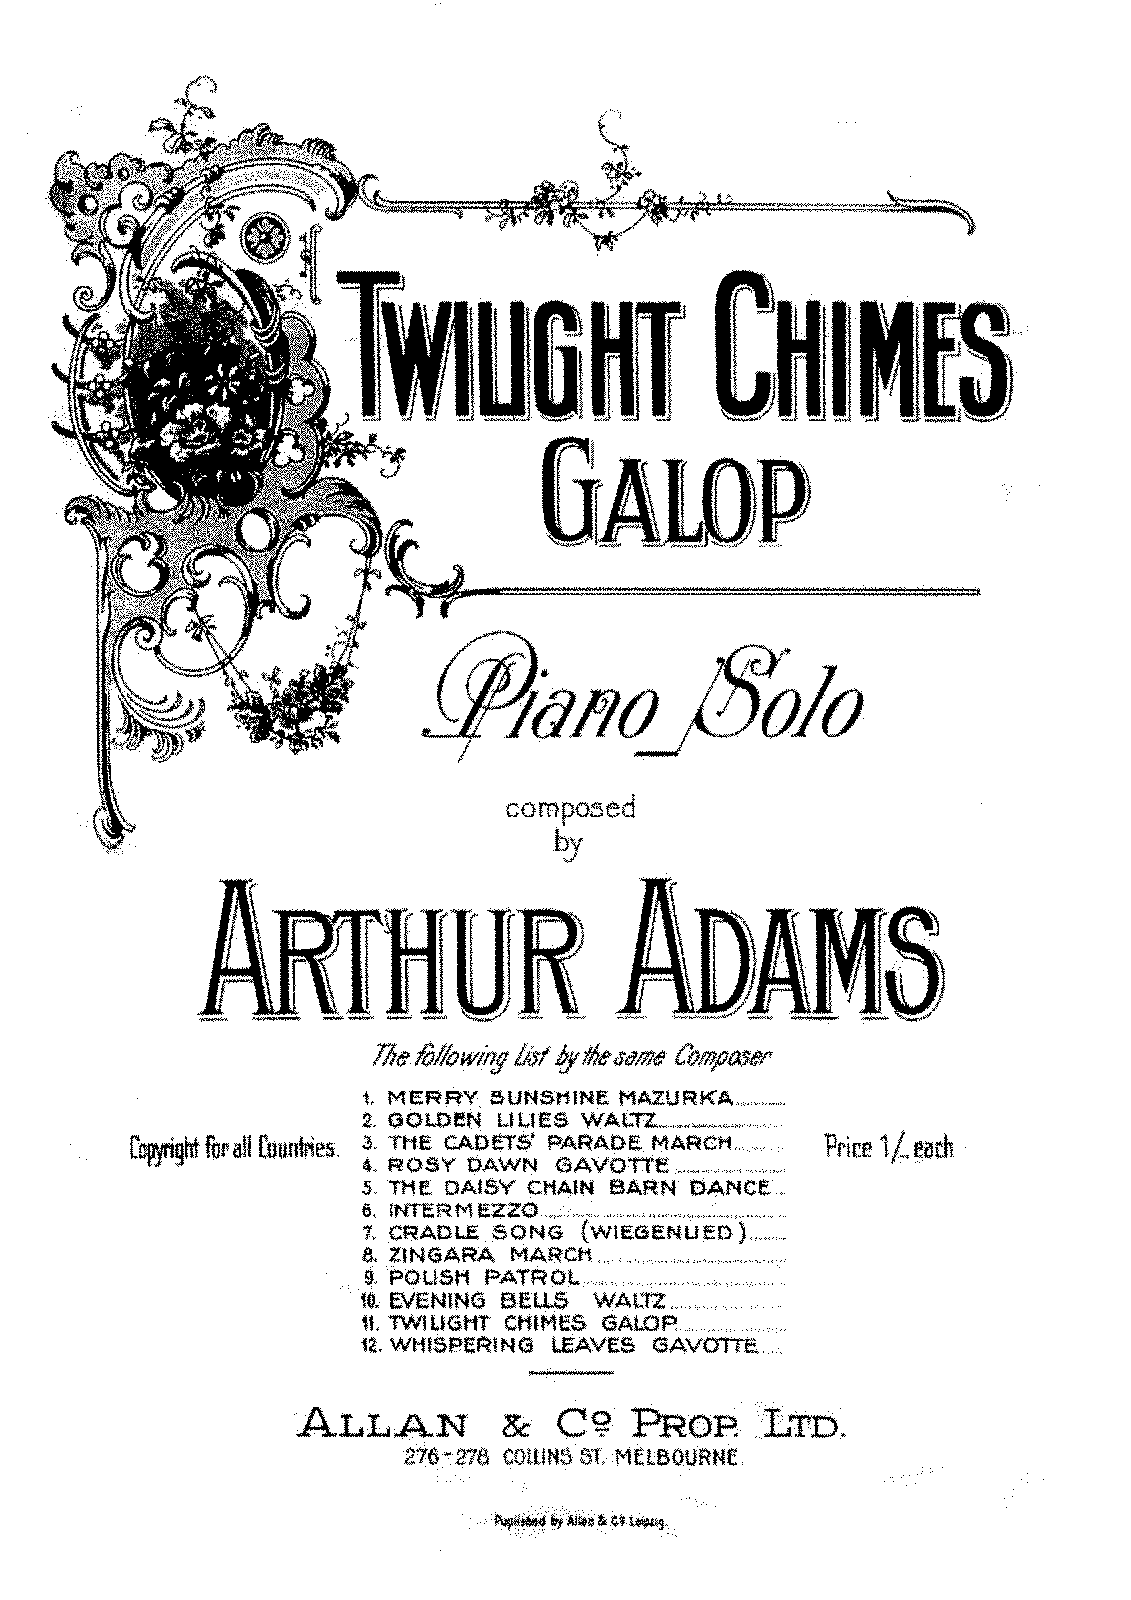 PMLP332613-Adams, Arthur - Galop Twilight Chimes NLA.pdf